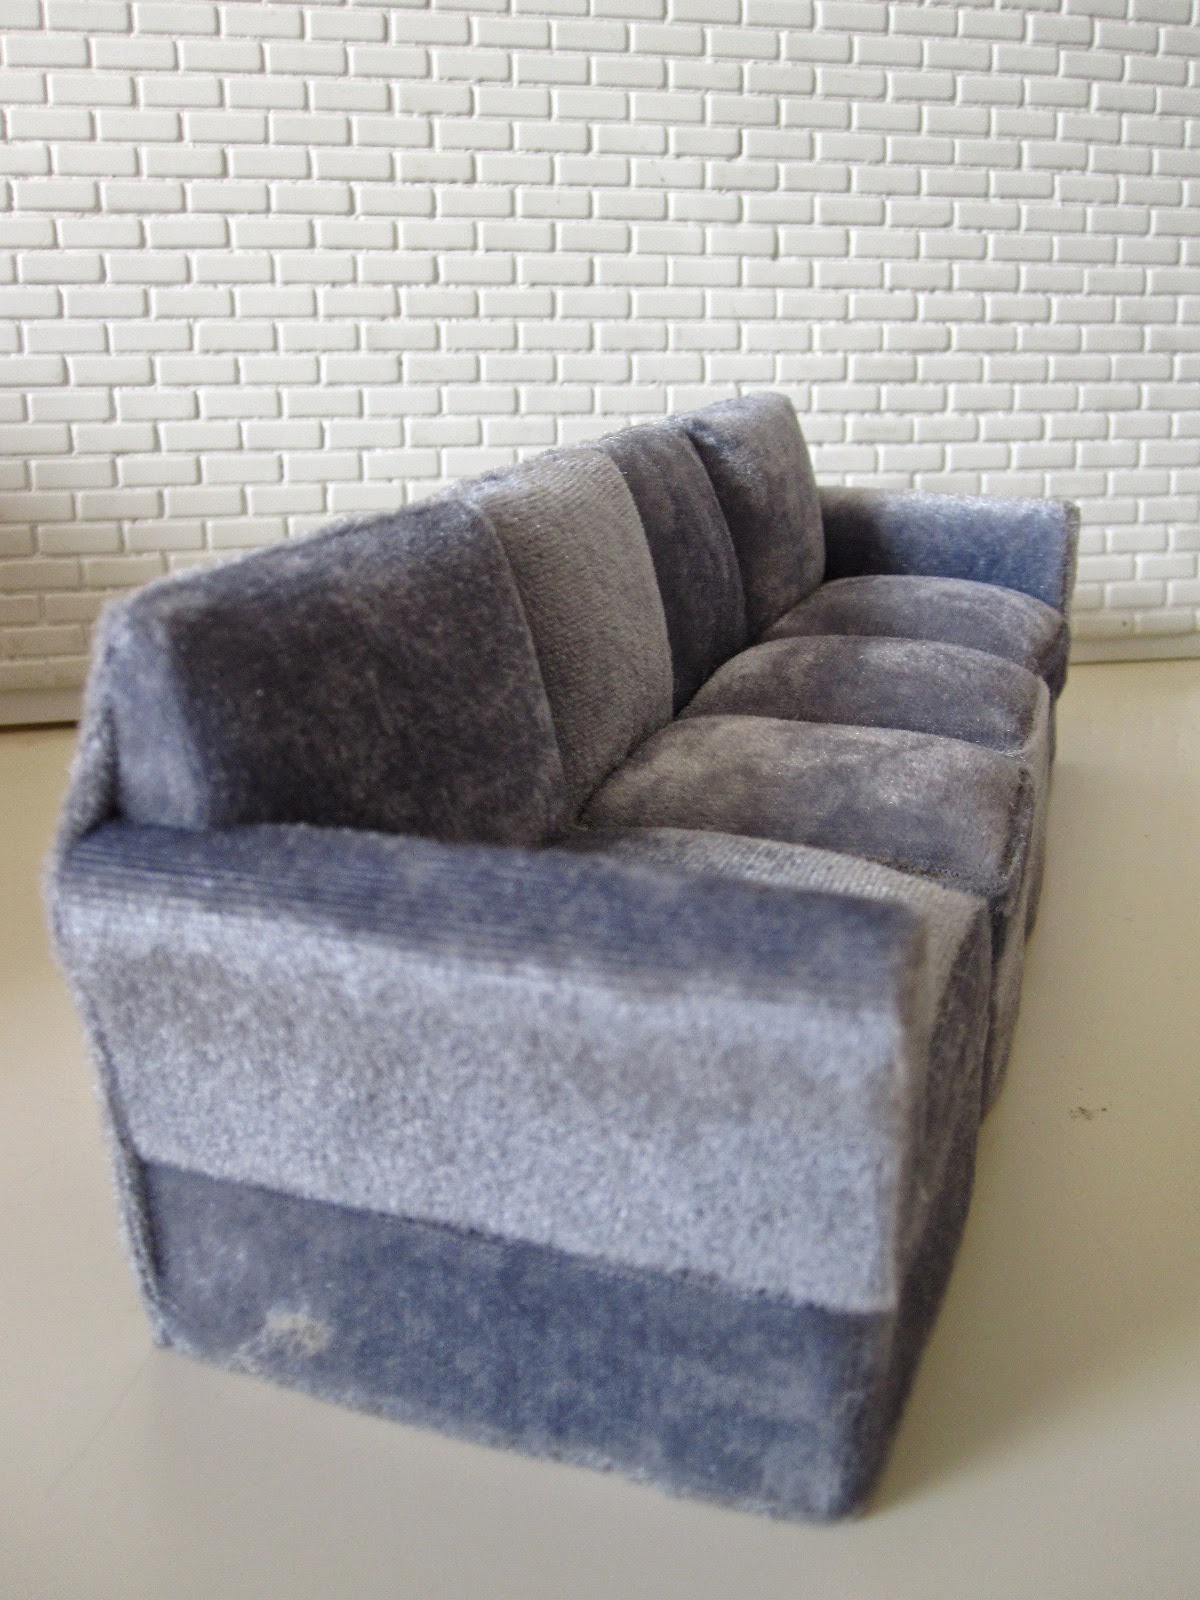 Modern miniature four seater grey velvet sofa.